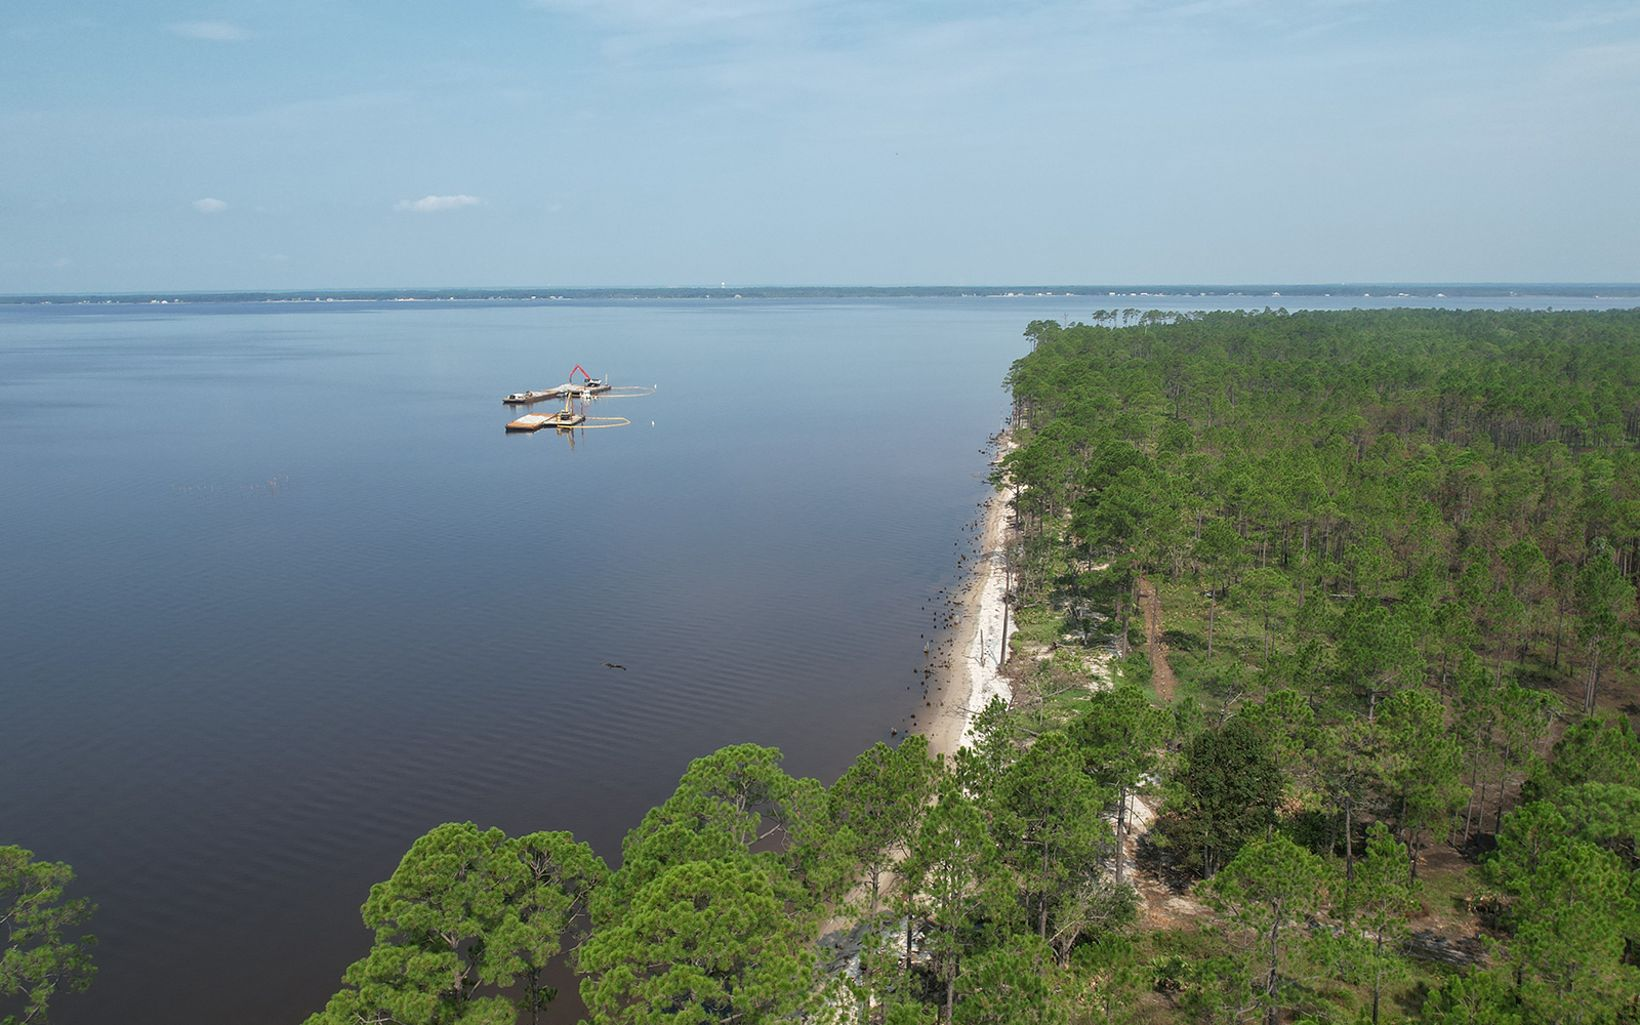 Aerial view of oyster reef under construction.